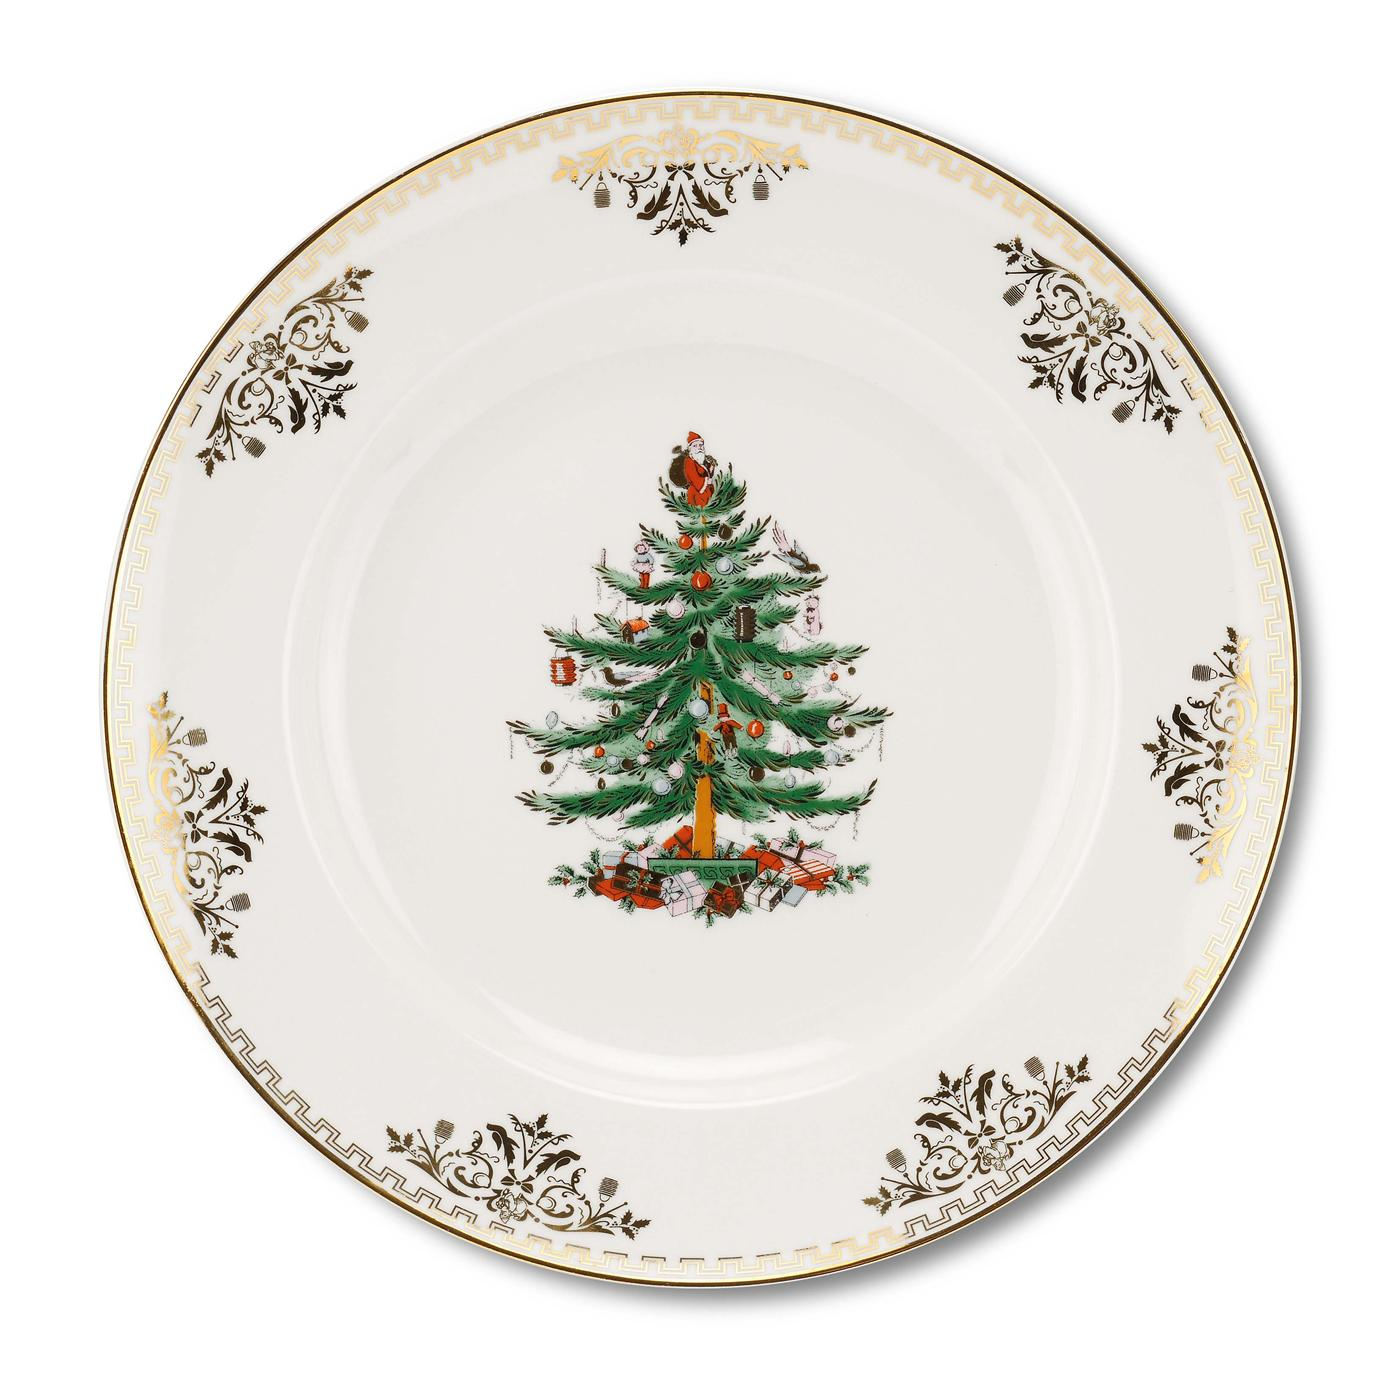 Spode Christmas Tree Gold Collection Set of 4 Dinner Plates image number 0